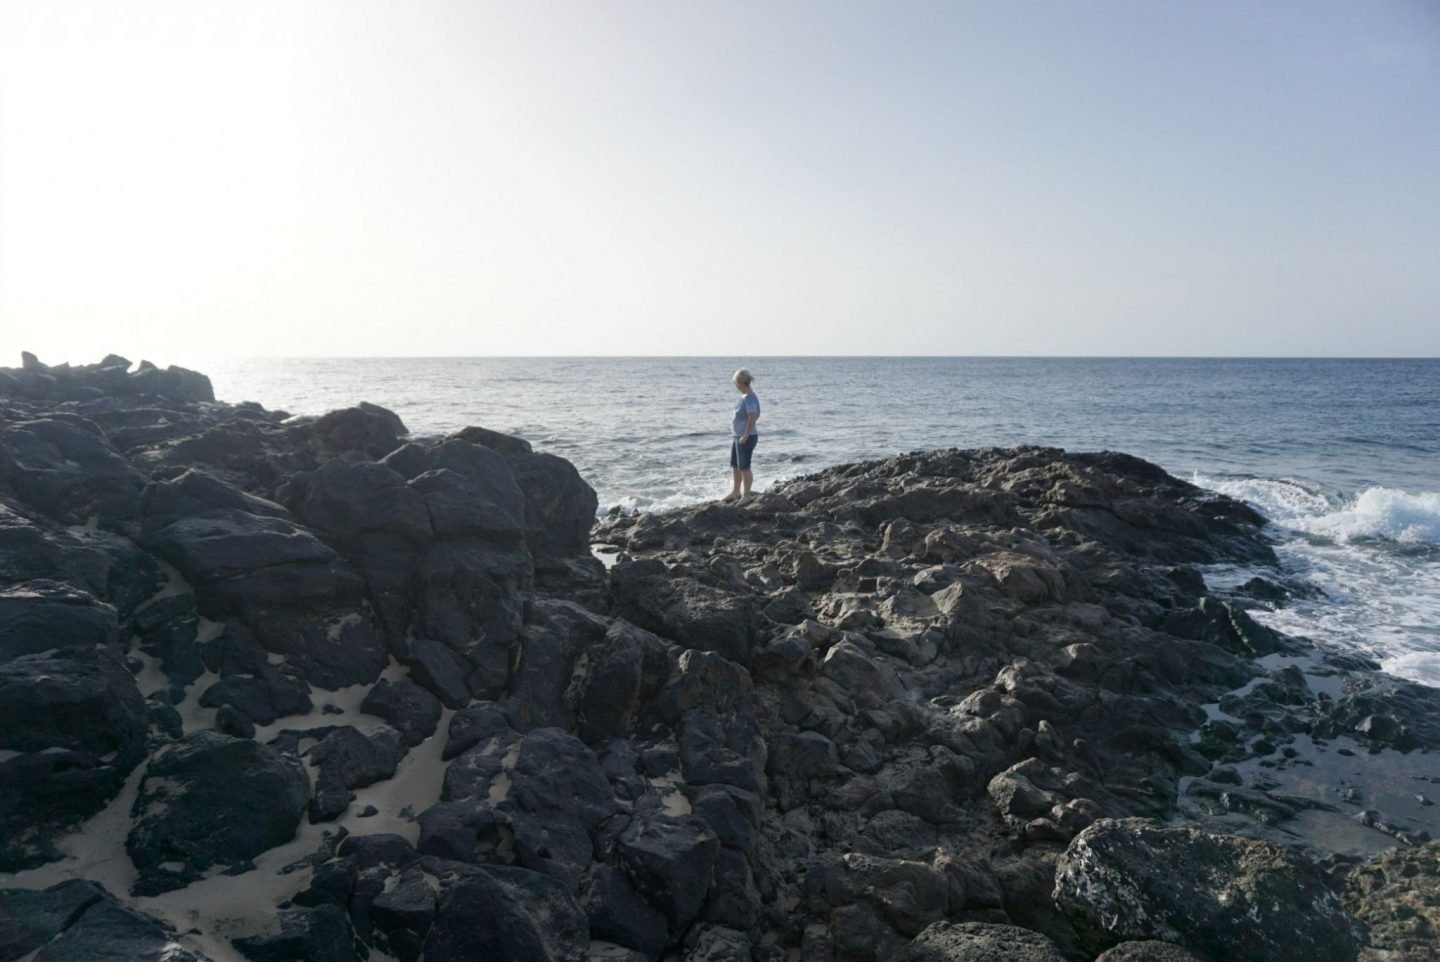 Looking out to sea in Lanzarote